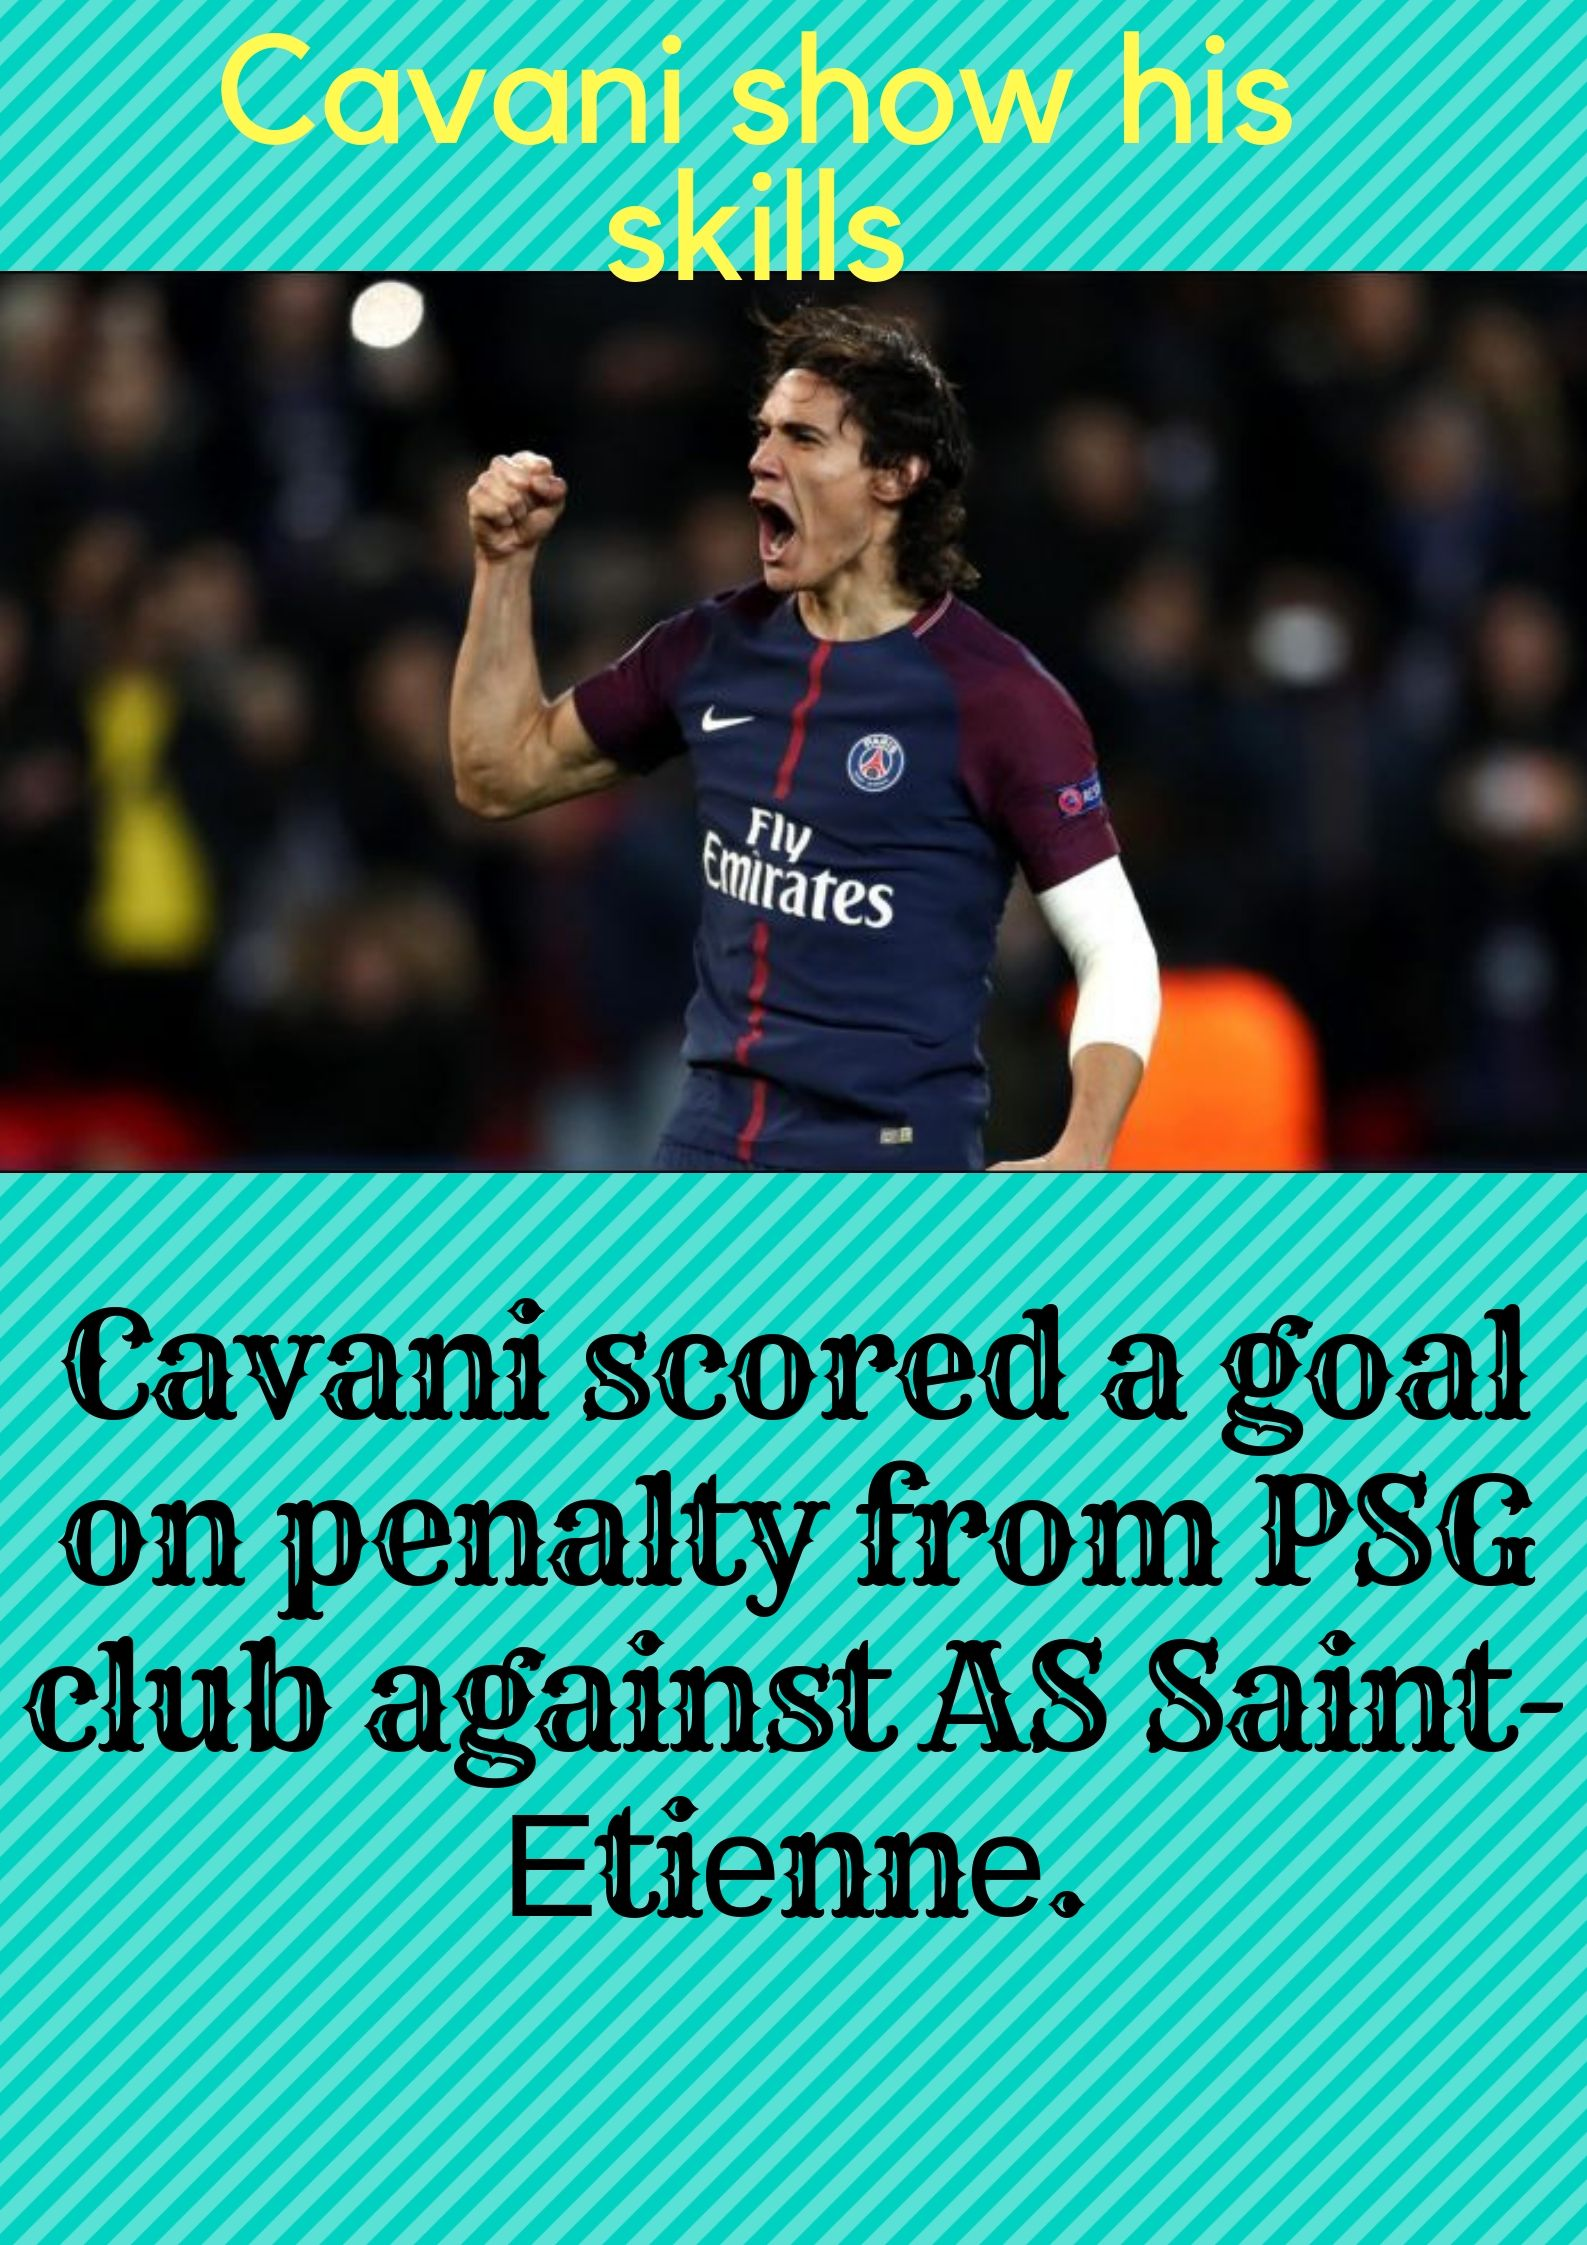 Cavani is famous player and now again show his skills